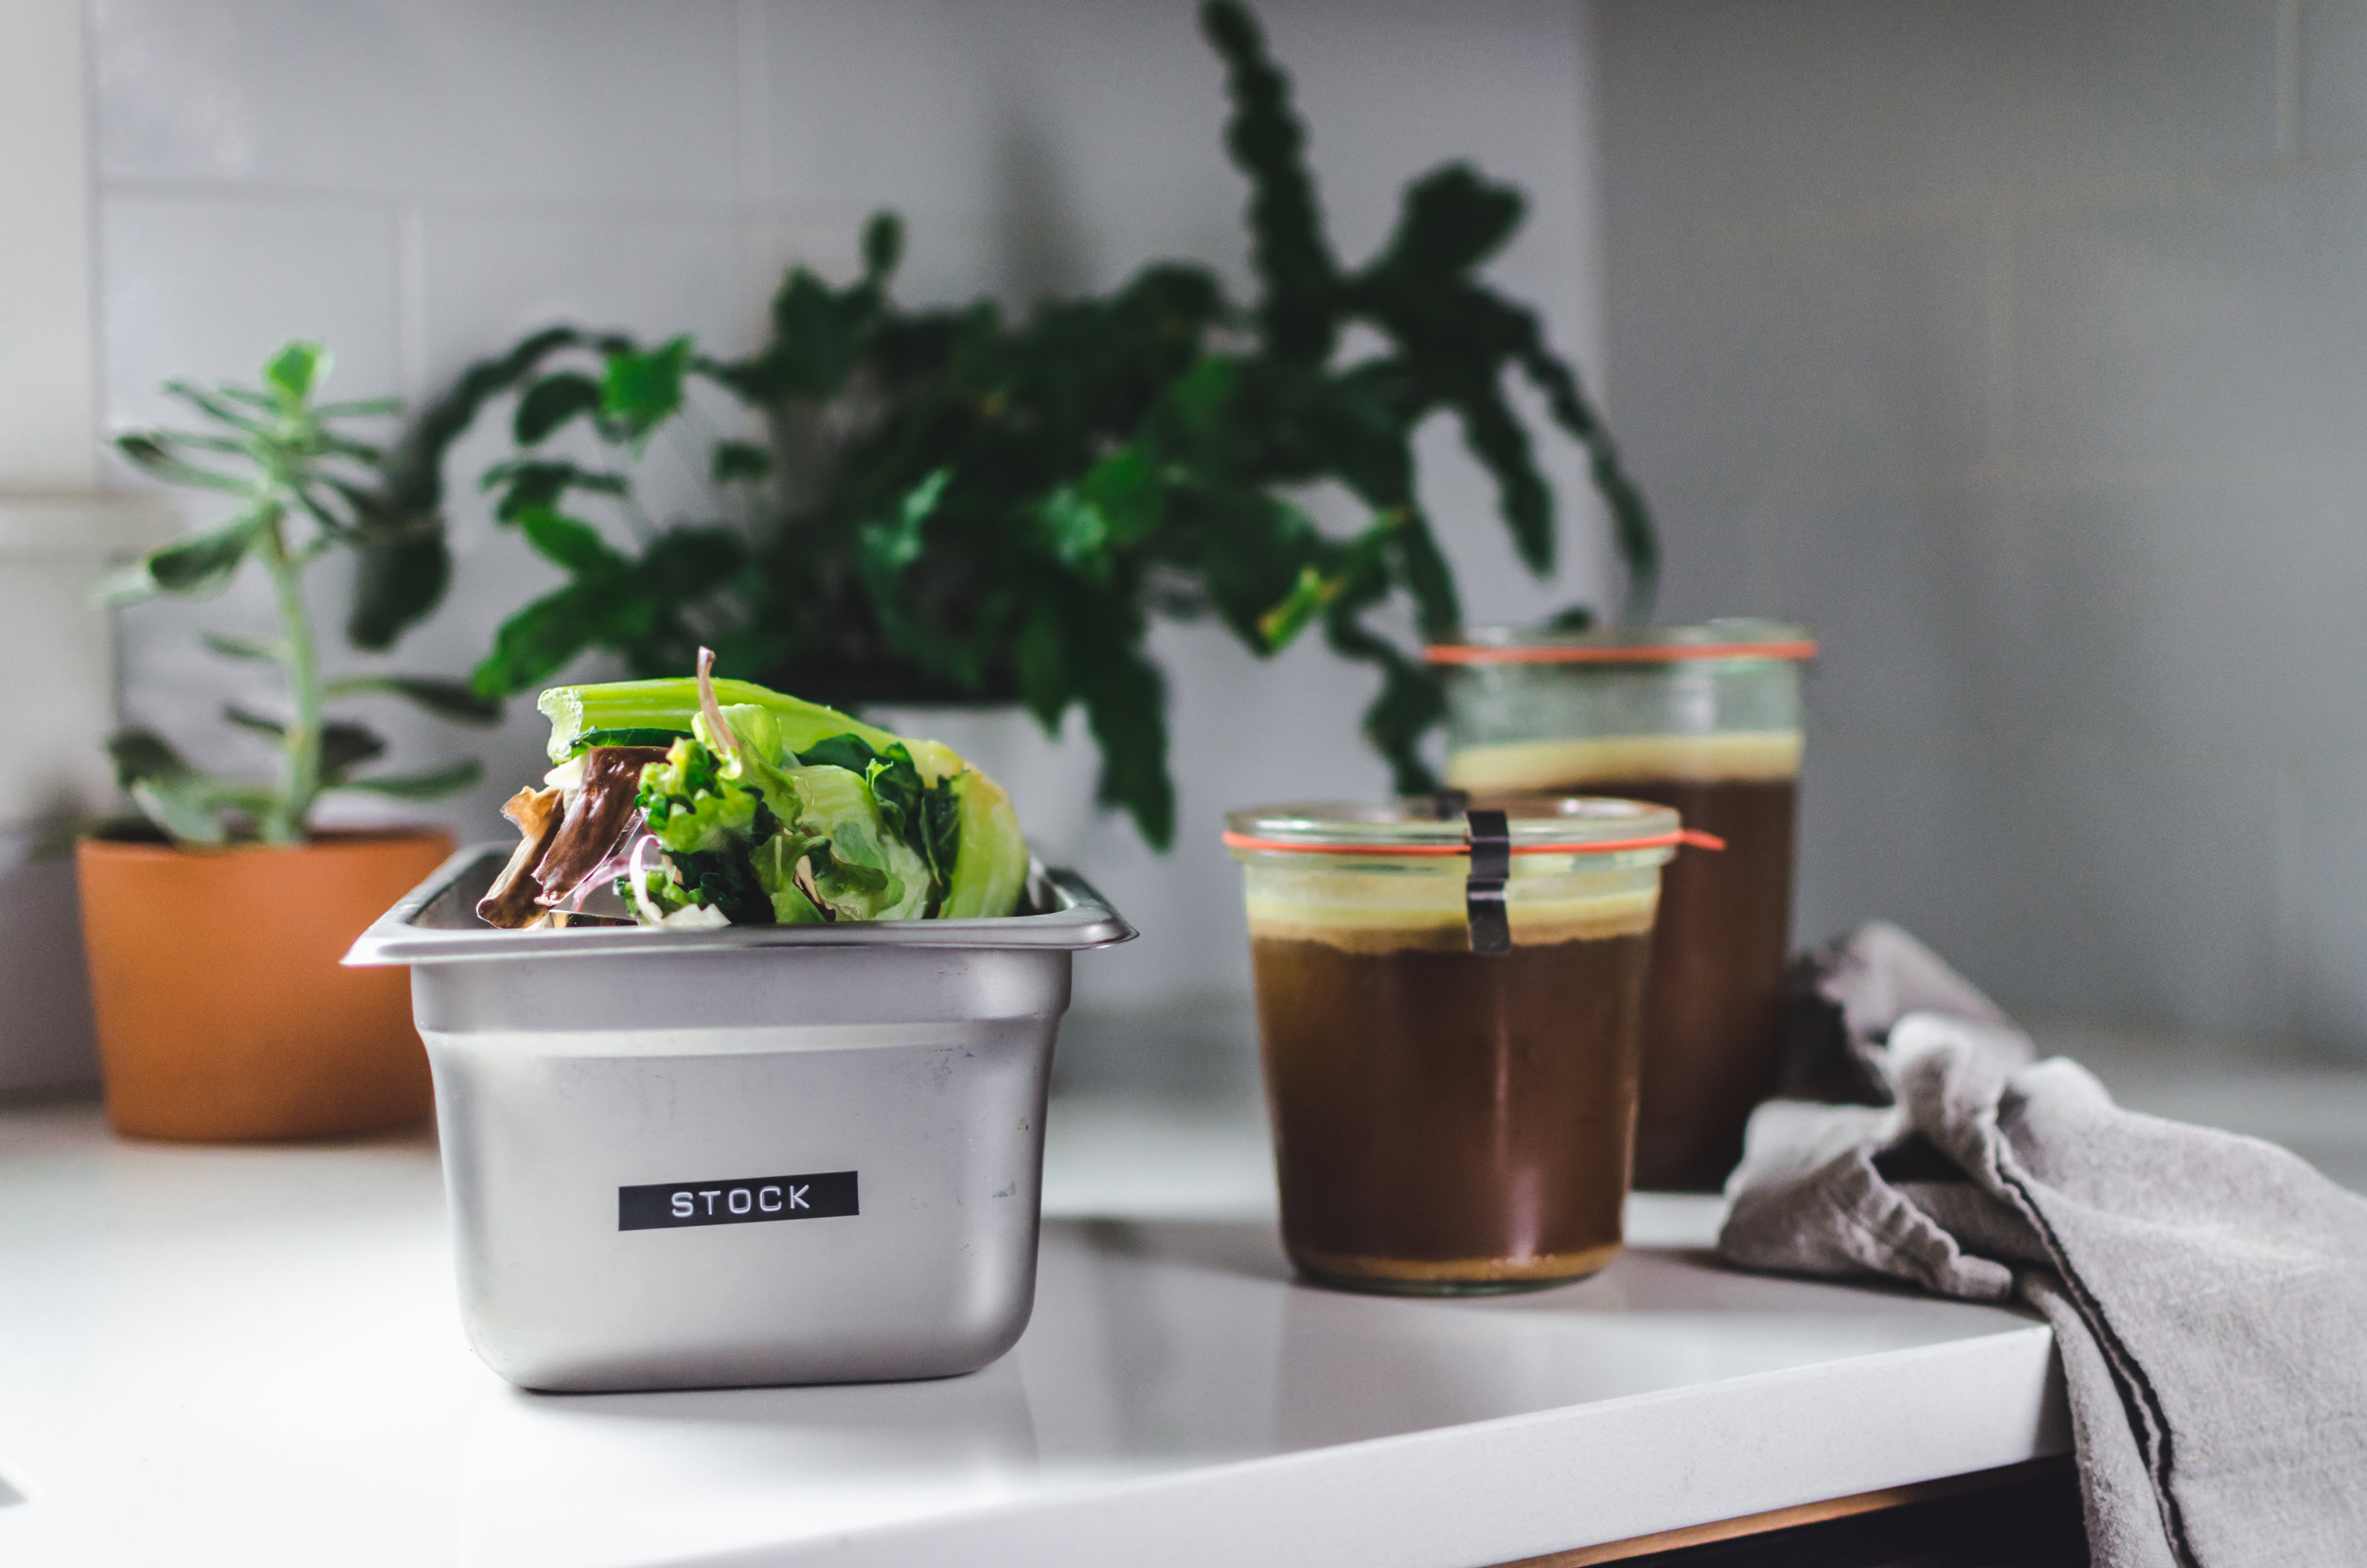 3. Use your food scraps - There are so many inventive ways to use your food scraps, i.e. carrot top pesto, vegetable stock. It all amounts to less food waste! We're big fans of Closed-Loop Cooking's recipes to reduce food waste.